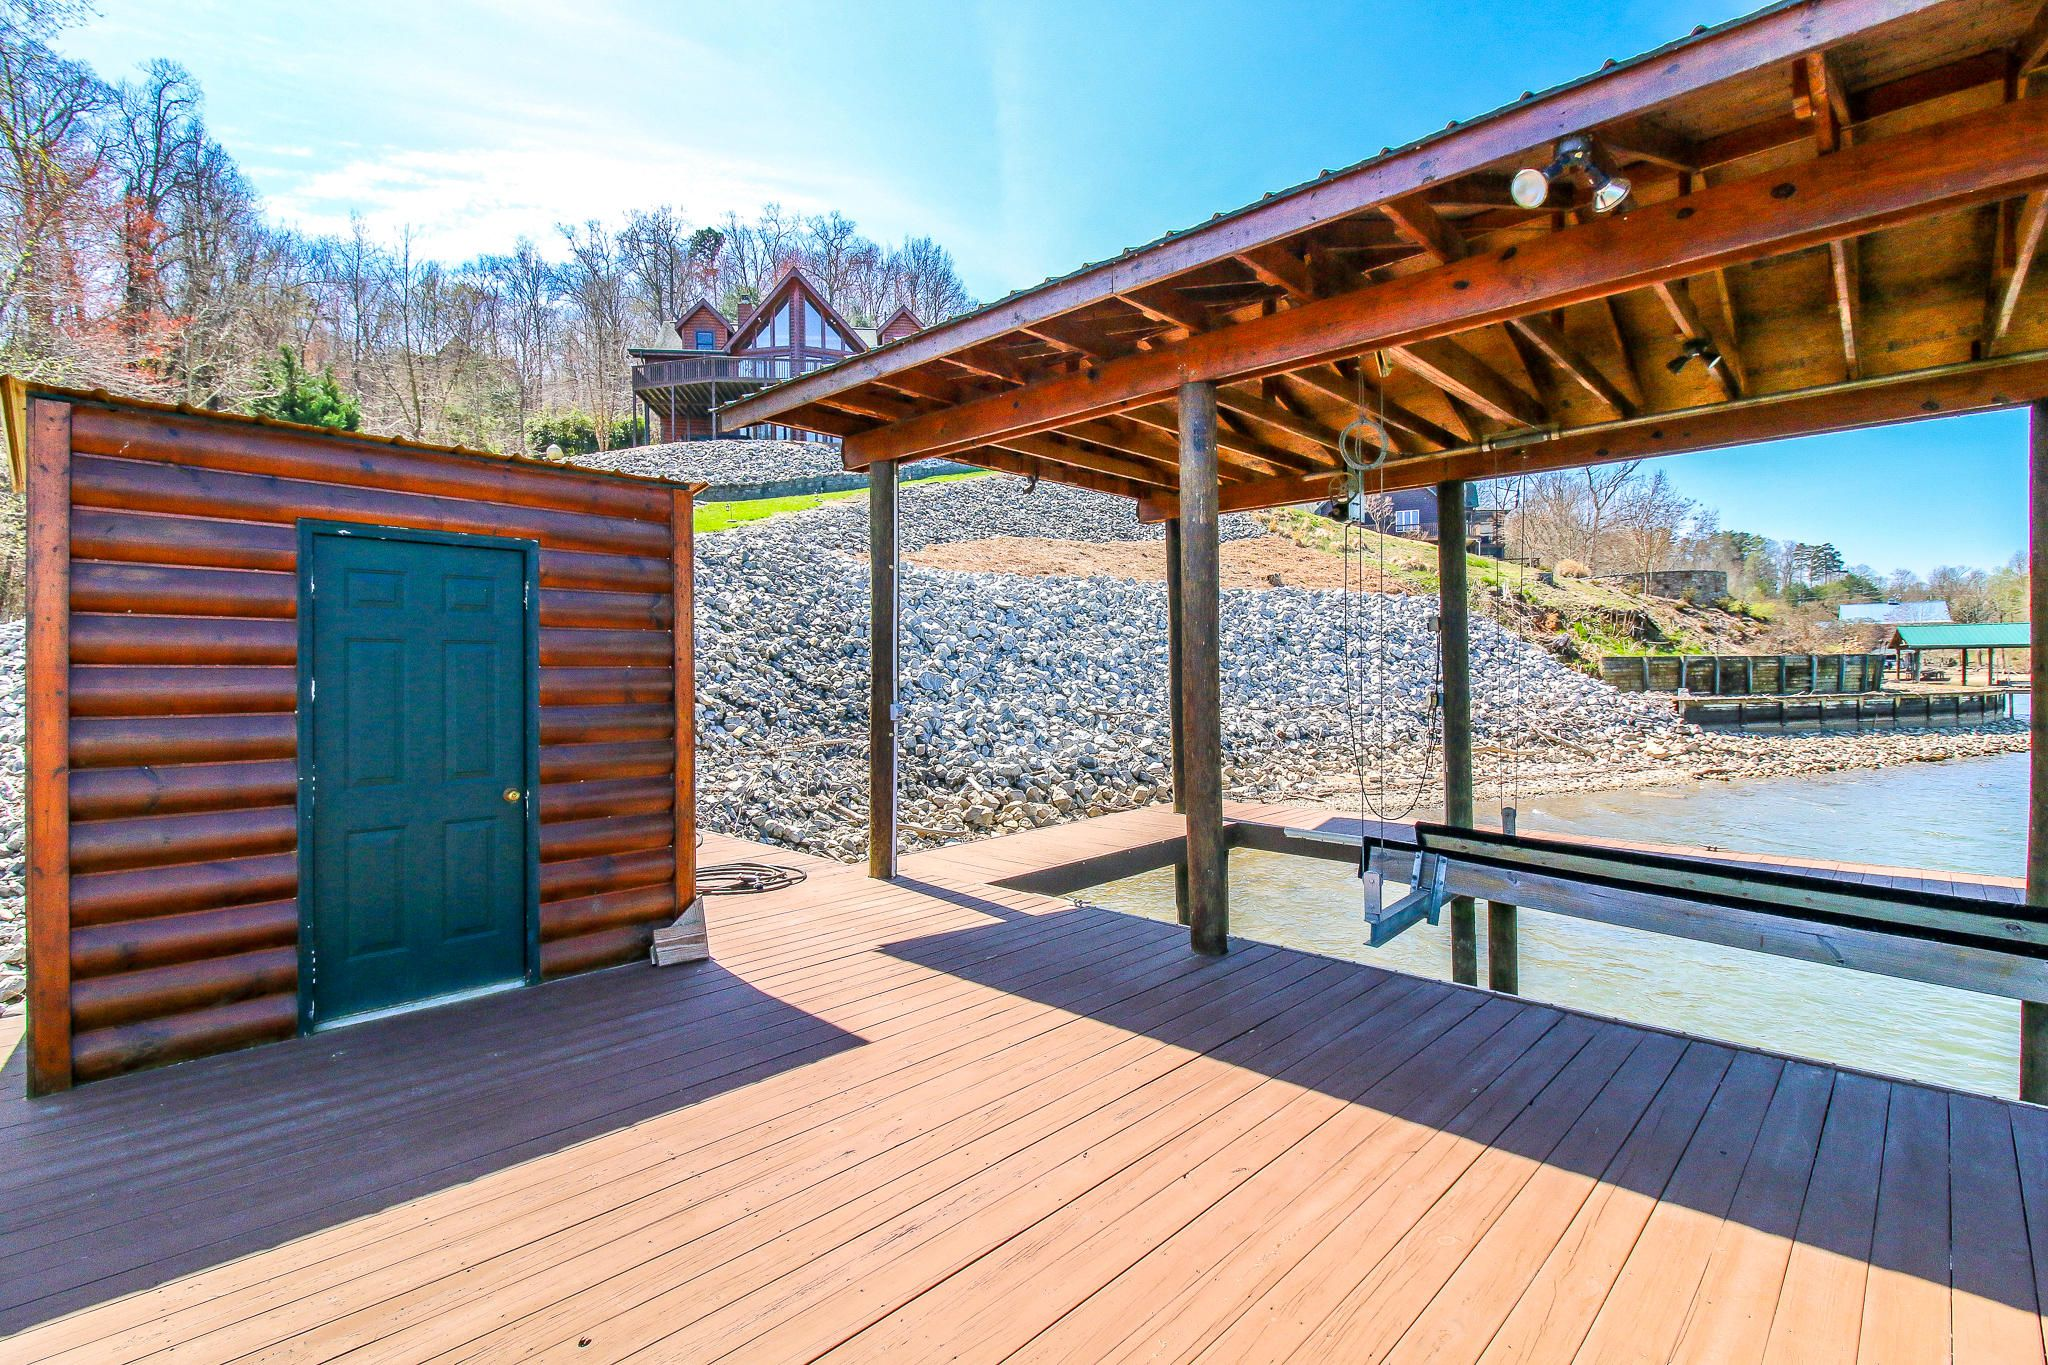 Boat dock w/storage building